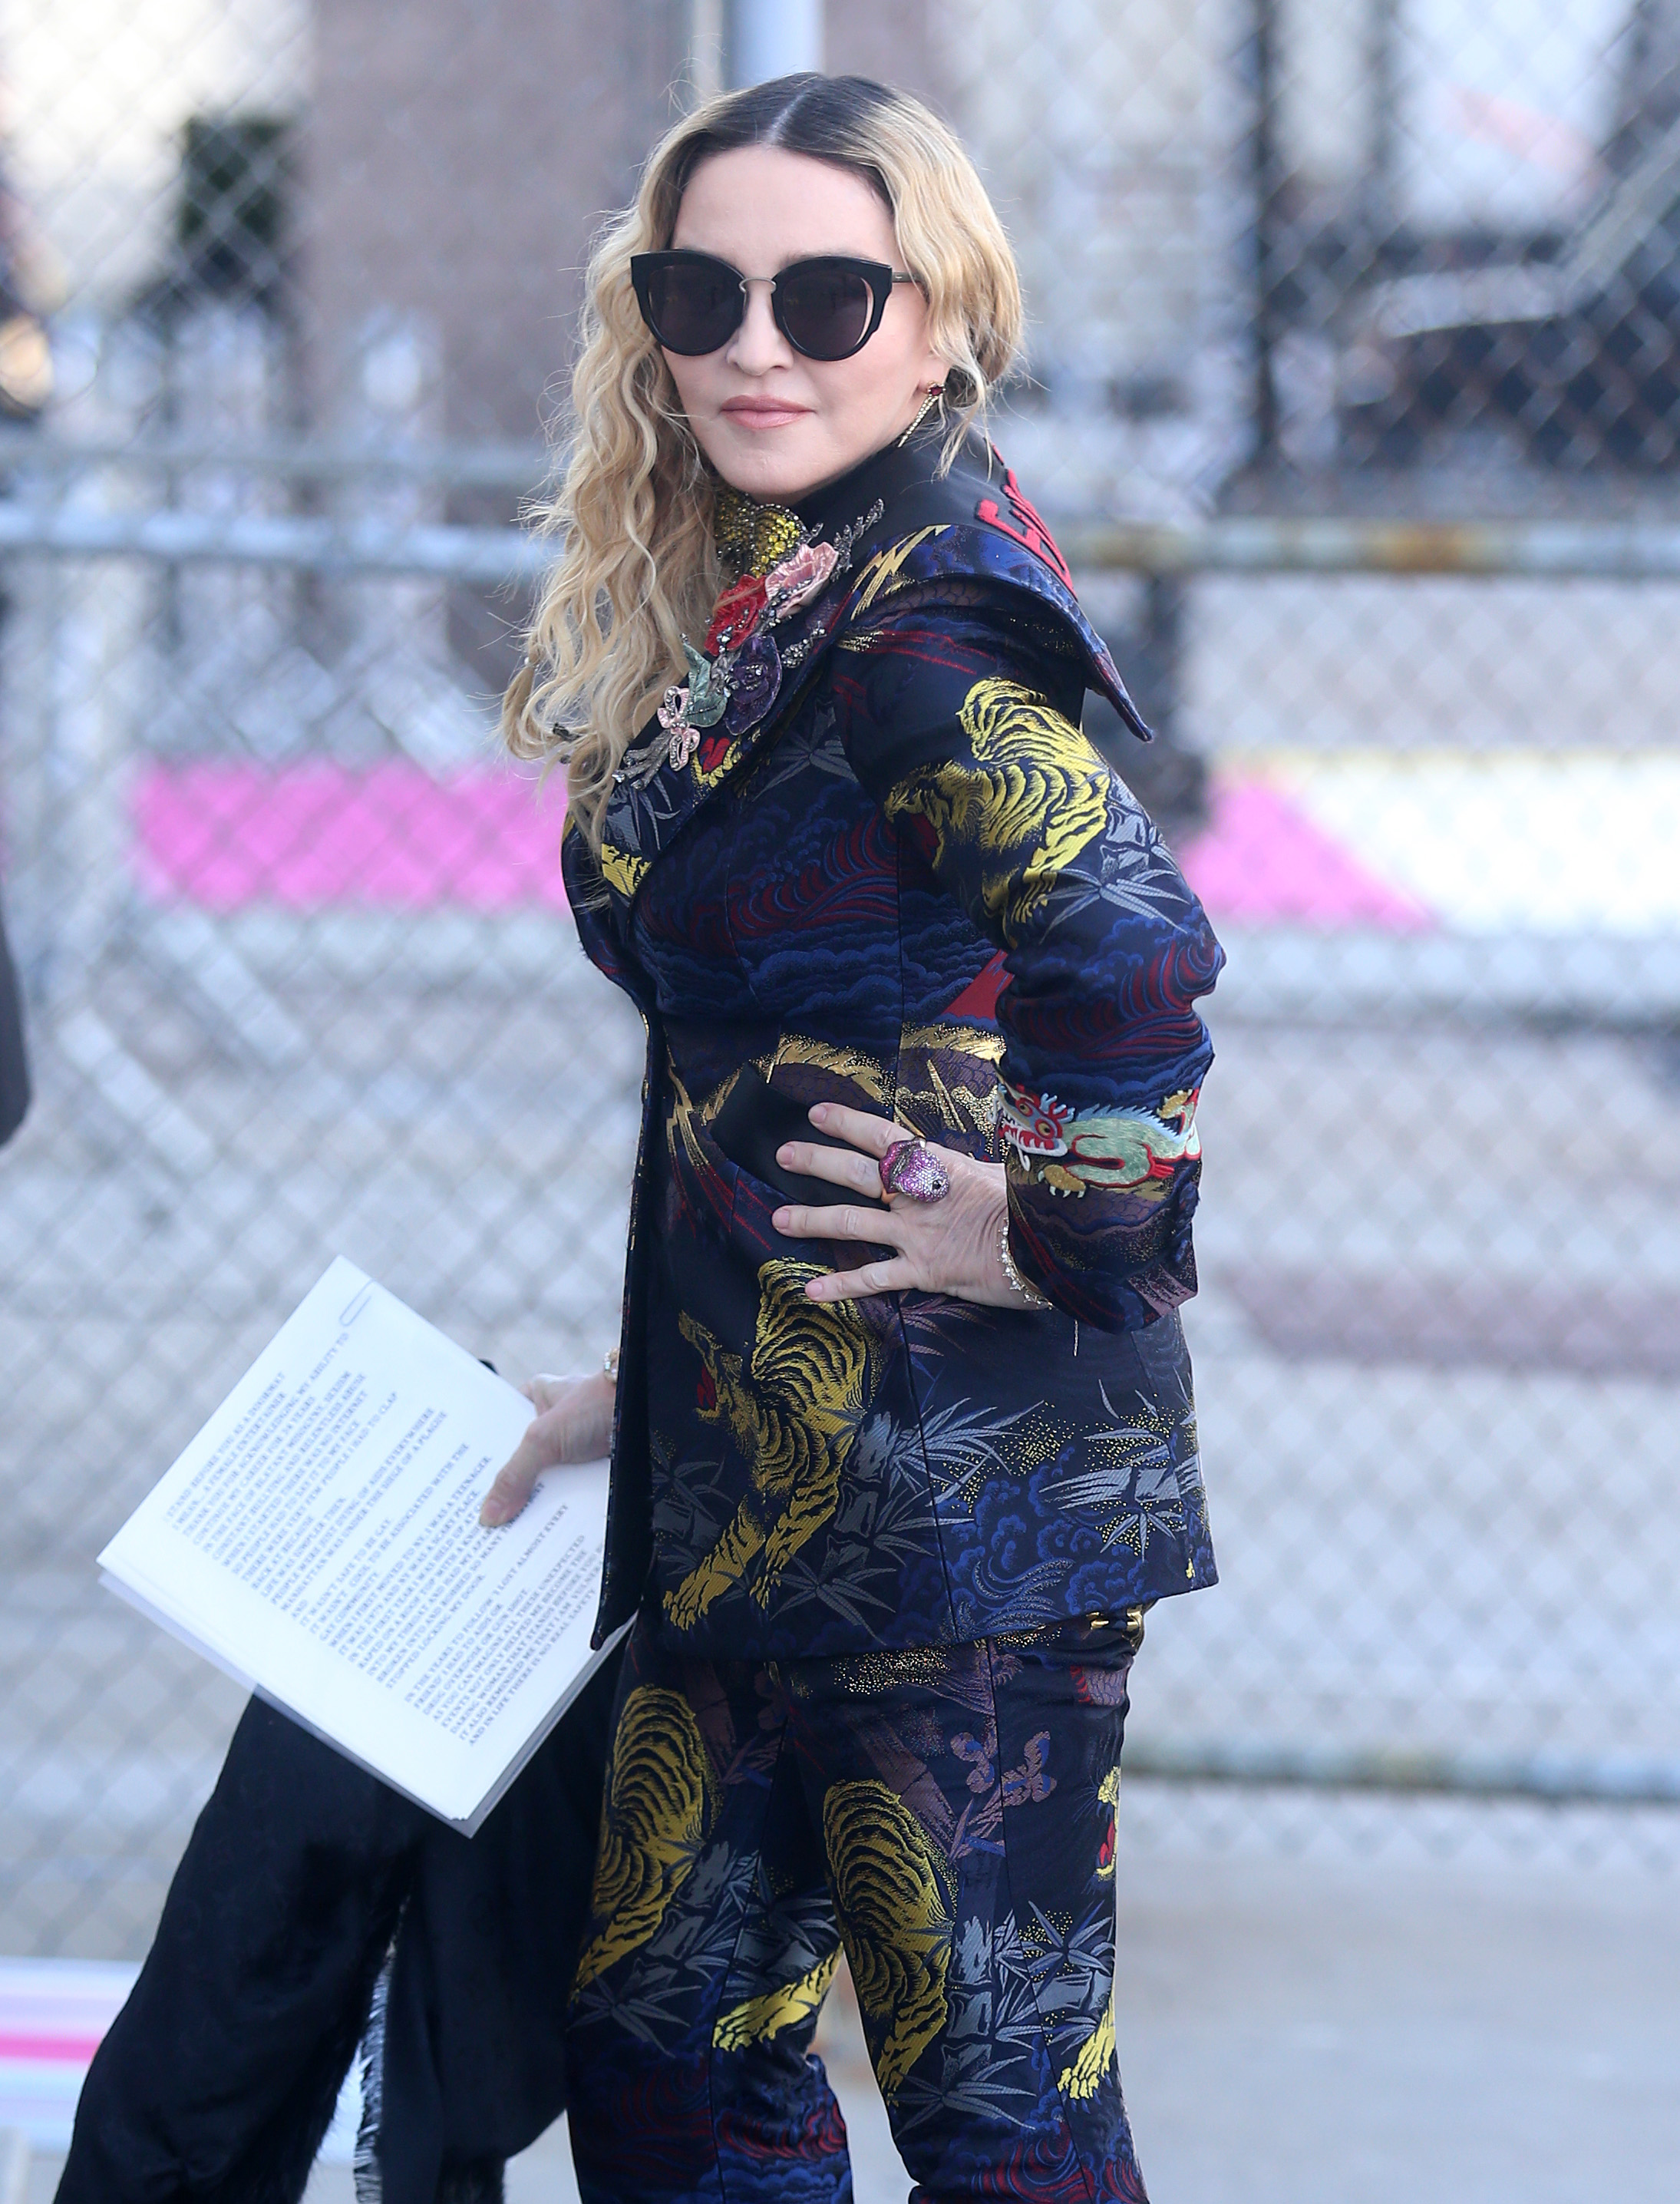 New York Style Sunglasses  spotted madonna wearing must have sunglasses what we adore